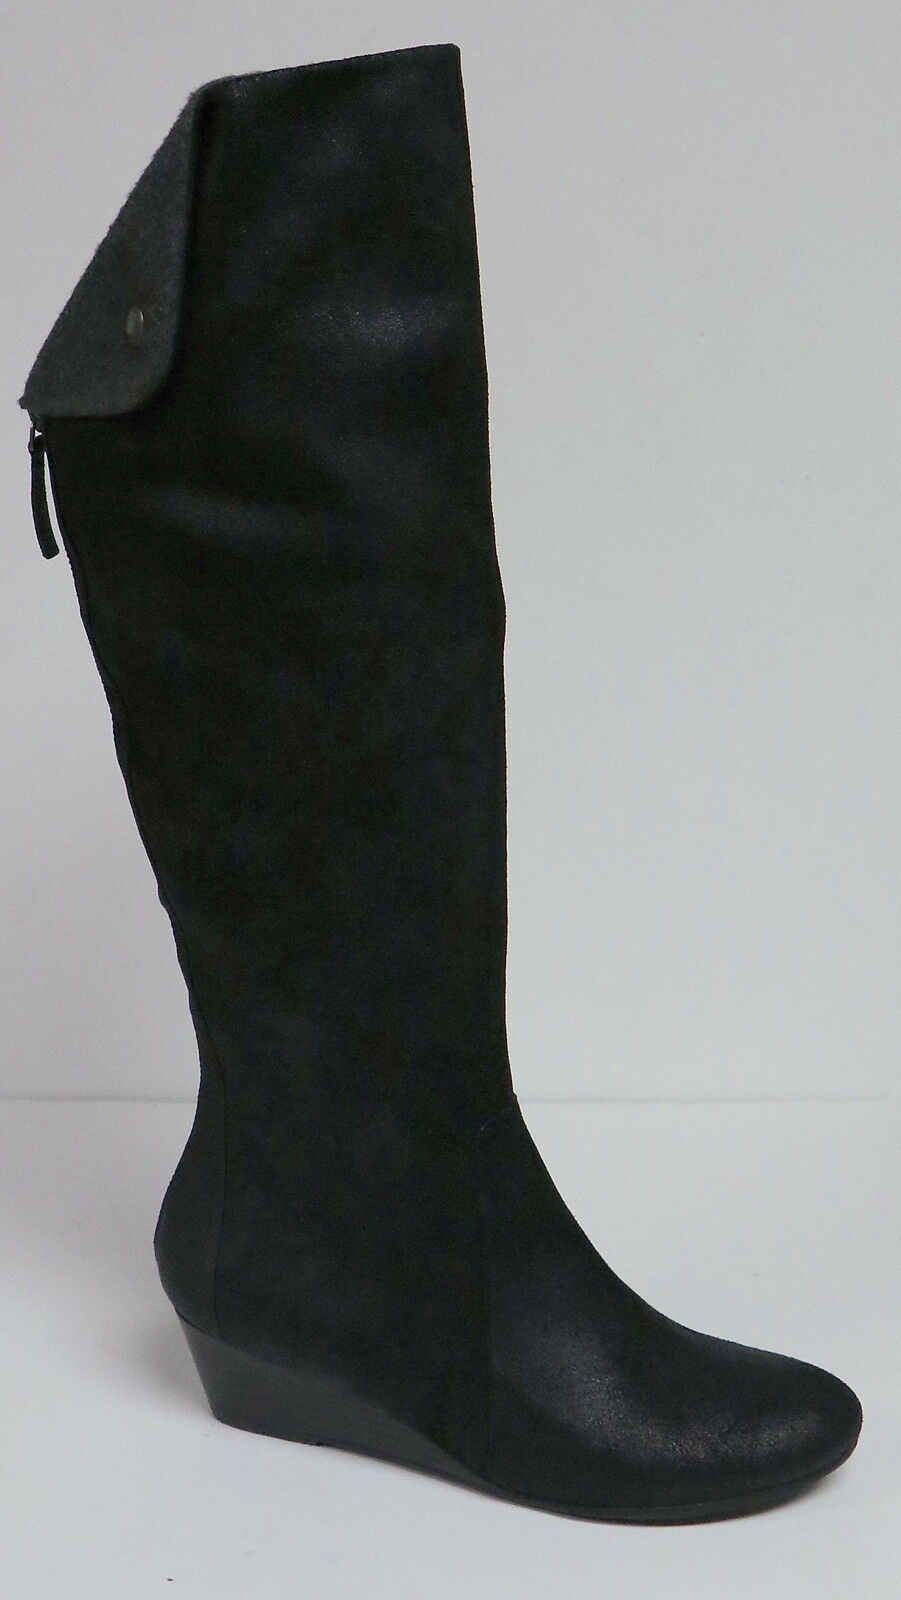 NICOLE PARIS WOMEN'S BLACK DISTRESSED LEATHER FASHION KNEE BOOTS WEDGE HEEL NEW